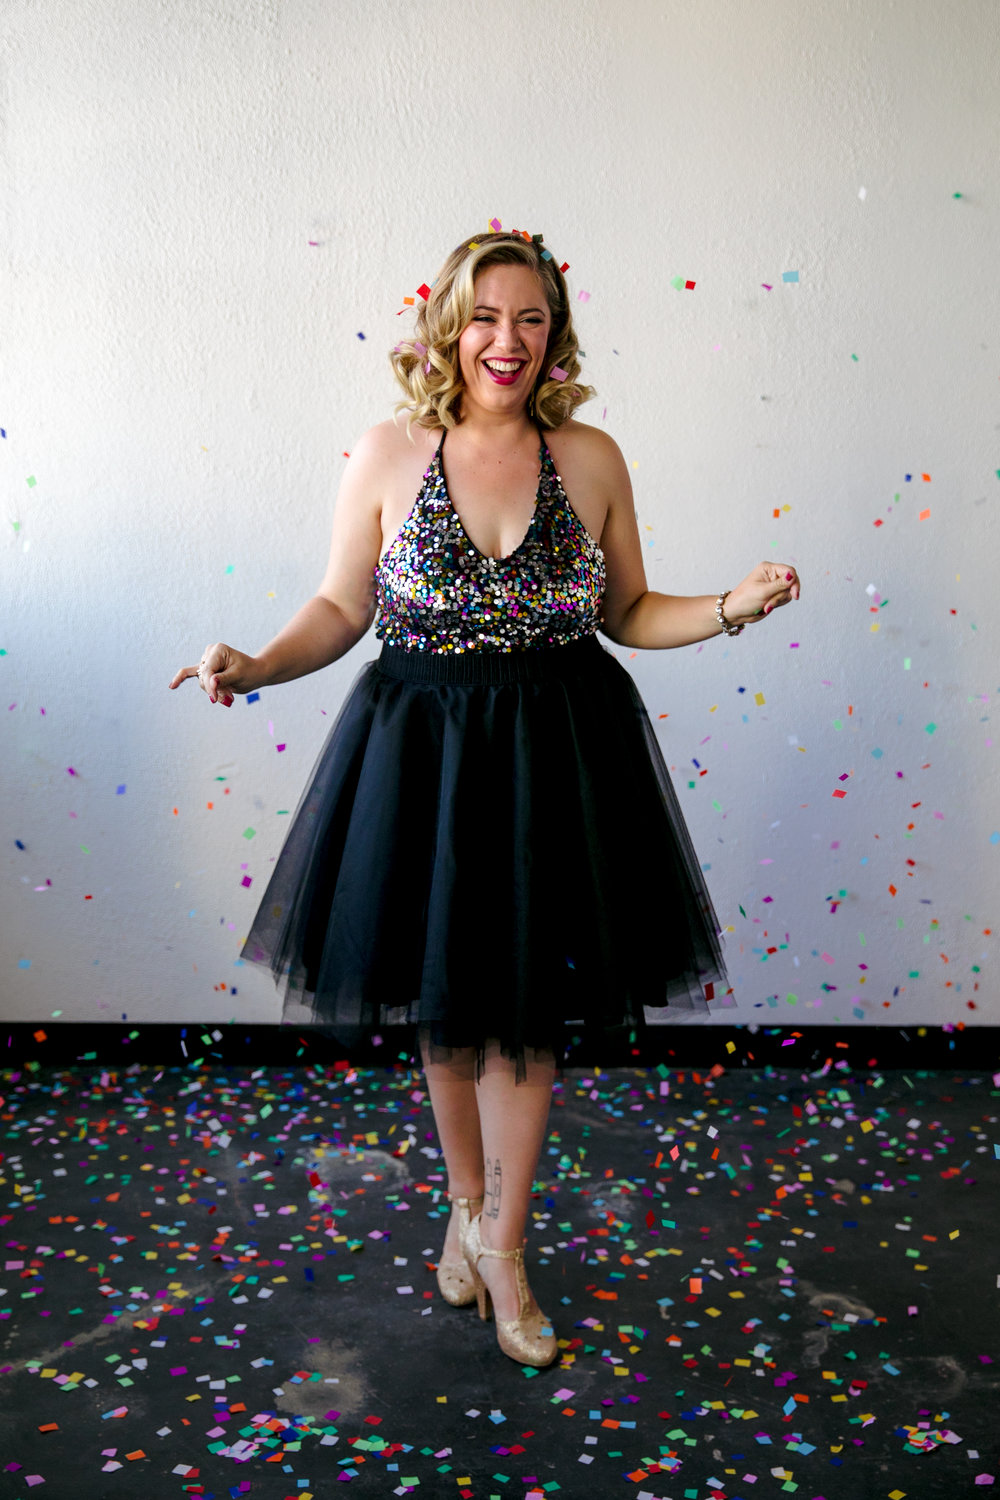 san jose california makeup artist kim baker beauty celebrates 30th birthday with a fun photoshoot wearing tulle skirt and standing on rainbow confetti